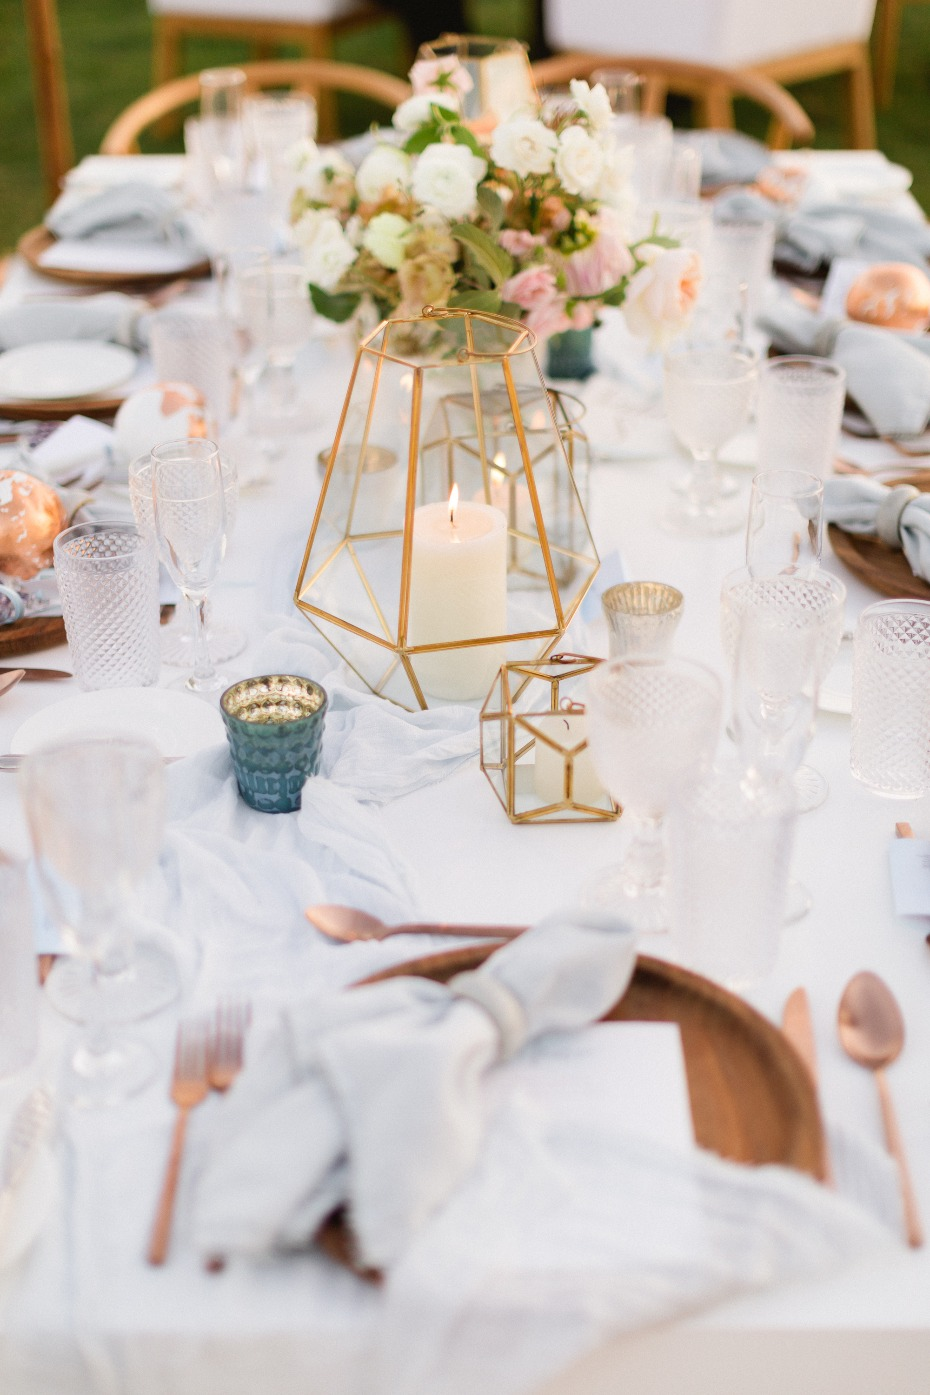 Chic table decor with gold glass lanterns